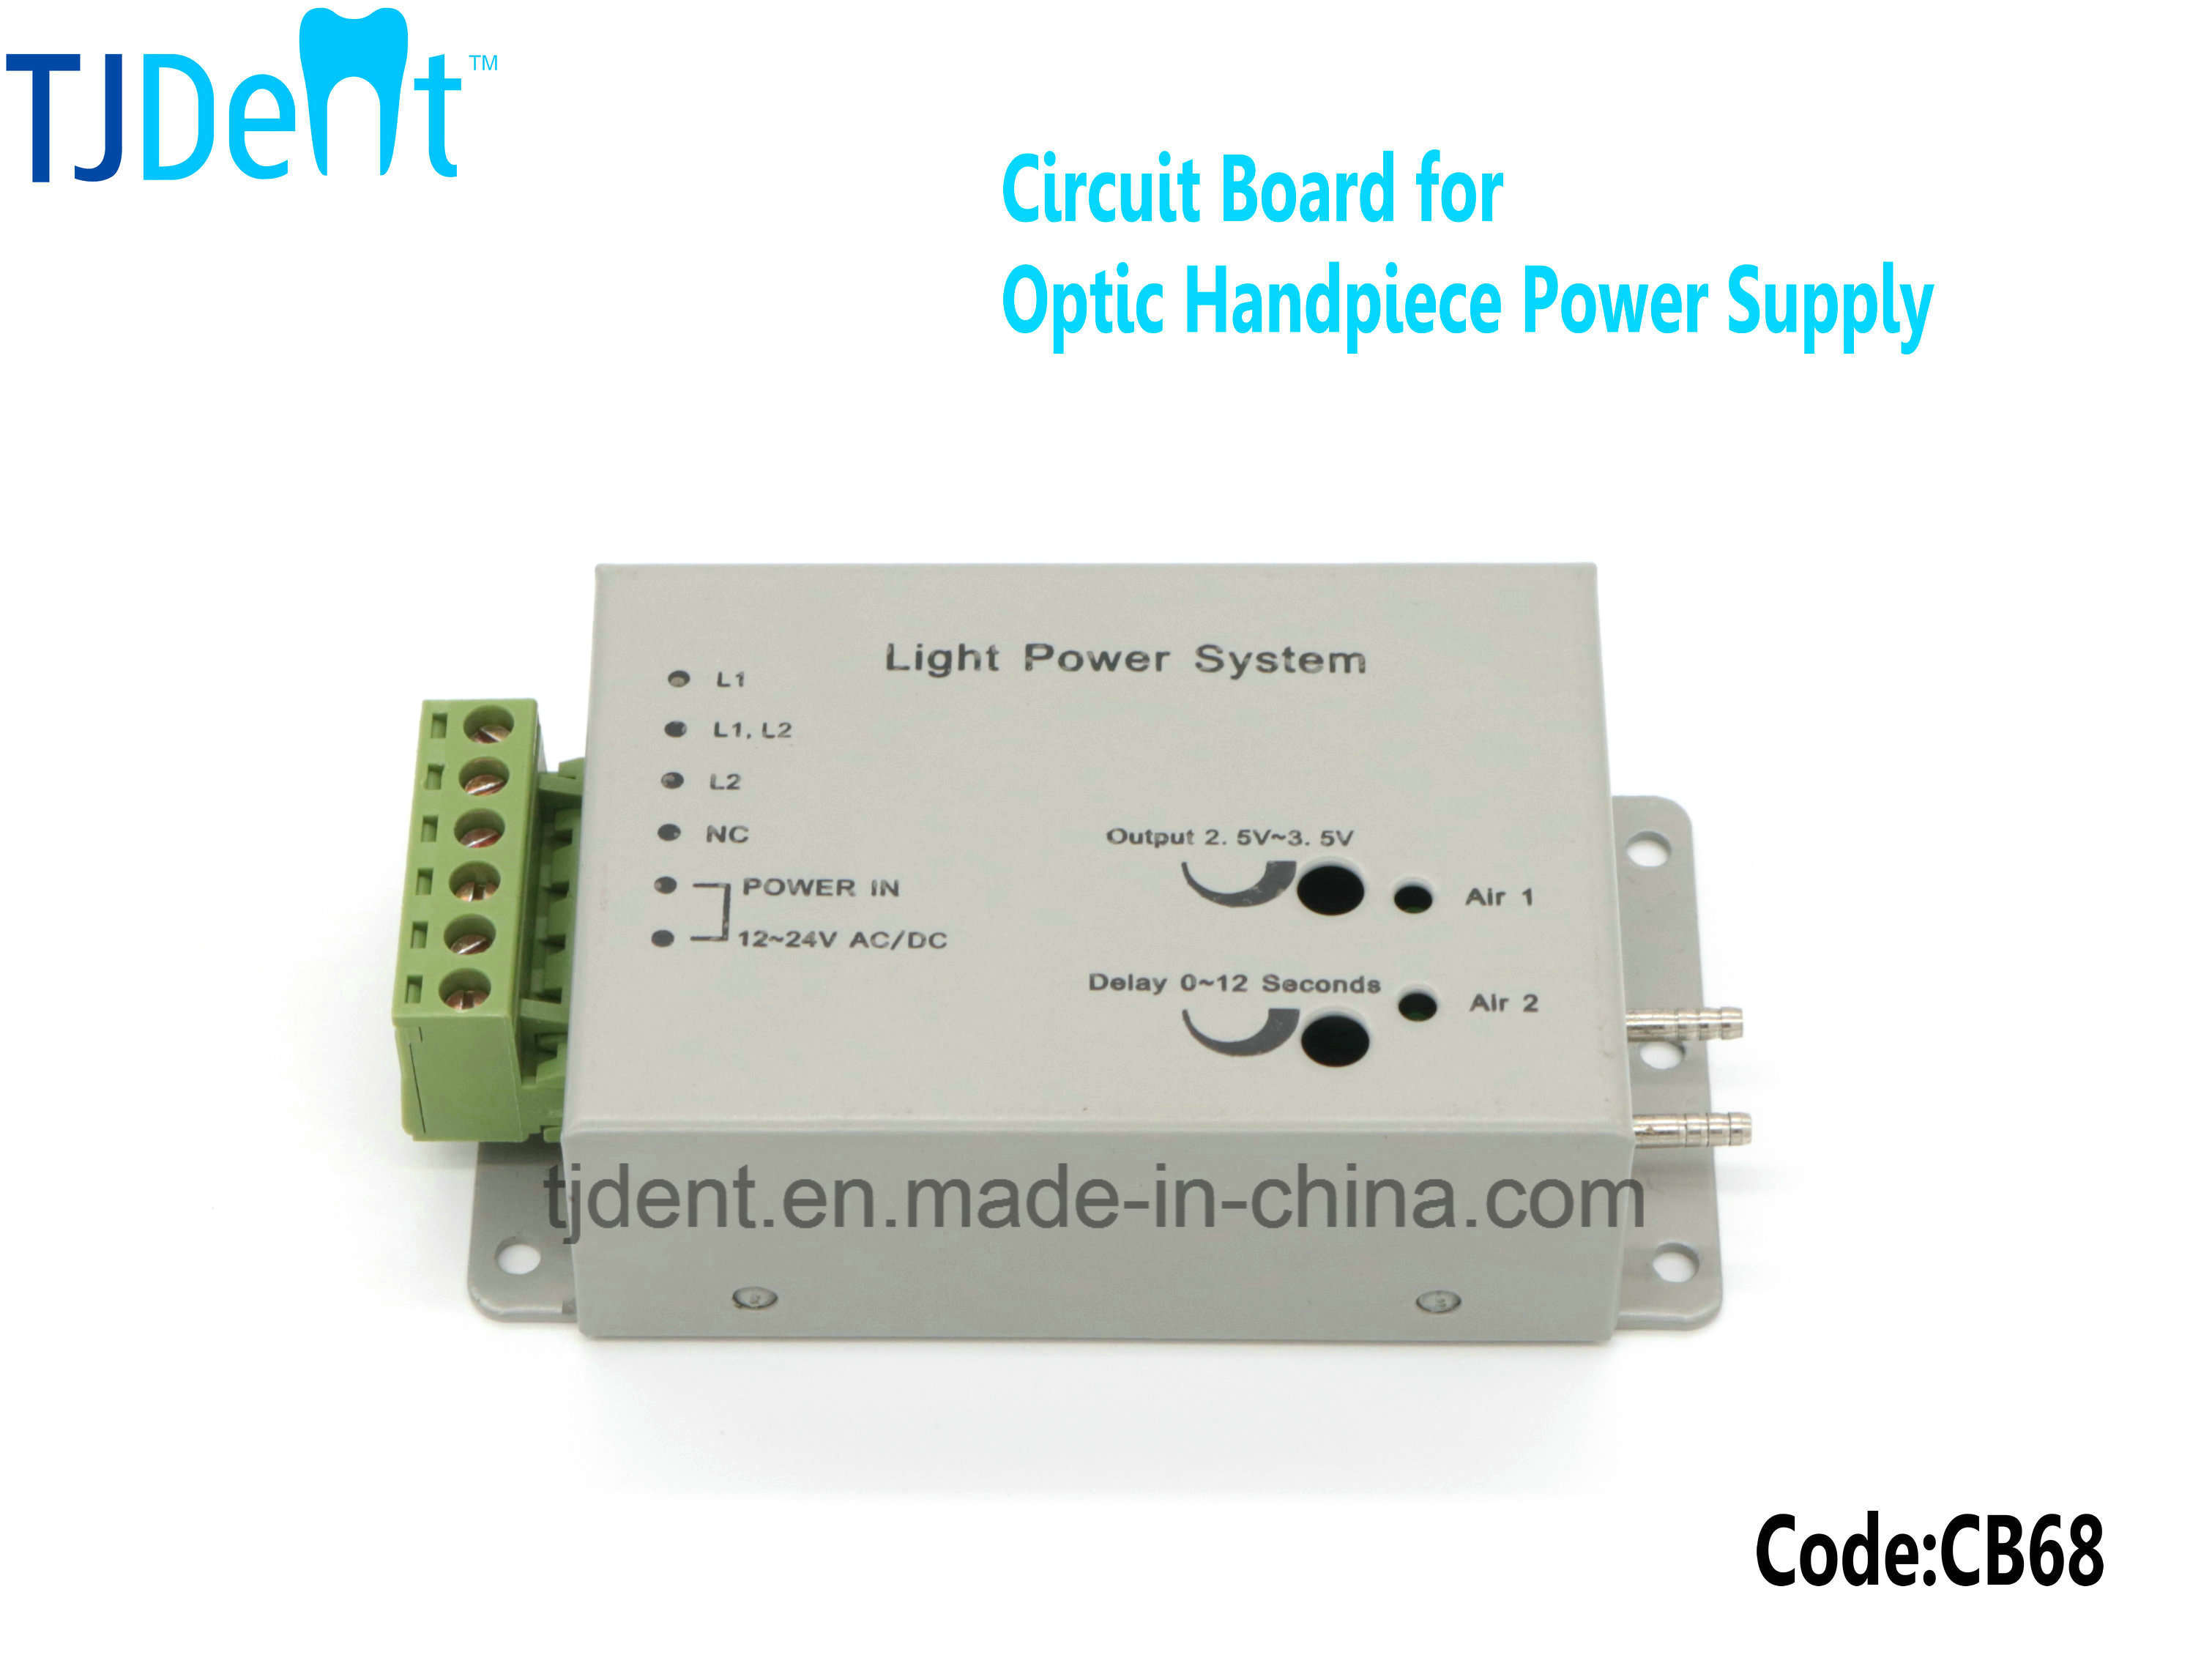 Dental Unit Circuit Board for Optic Handpiece Power Supply (CB68)